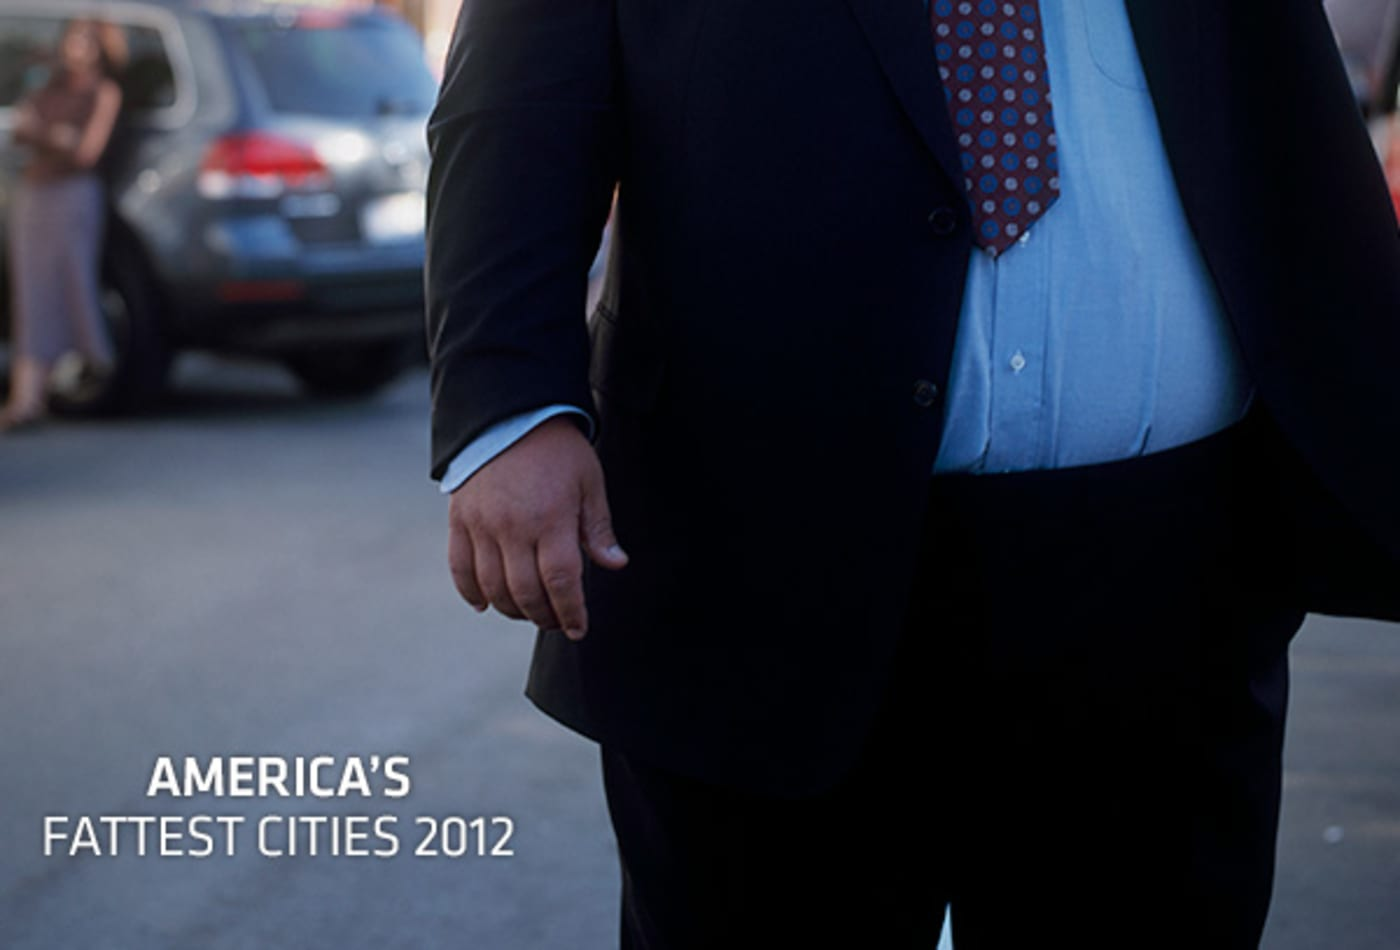 americas-fattest-cities-cover.jpg